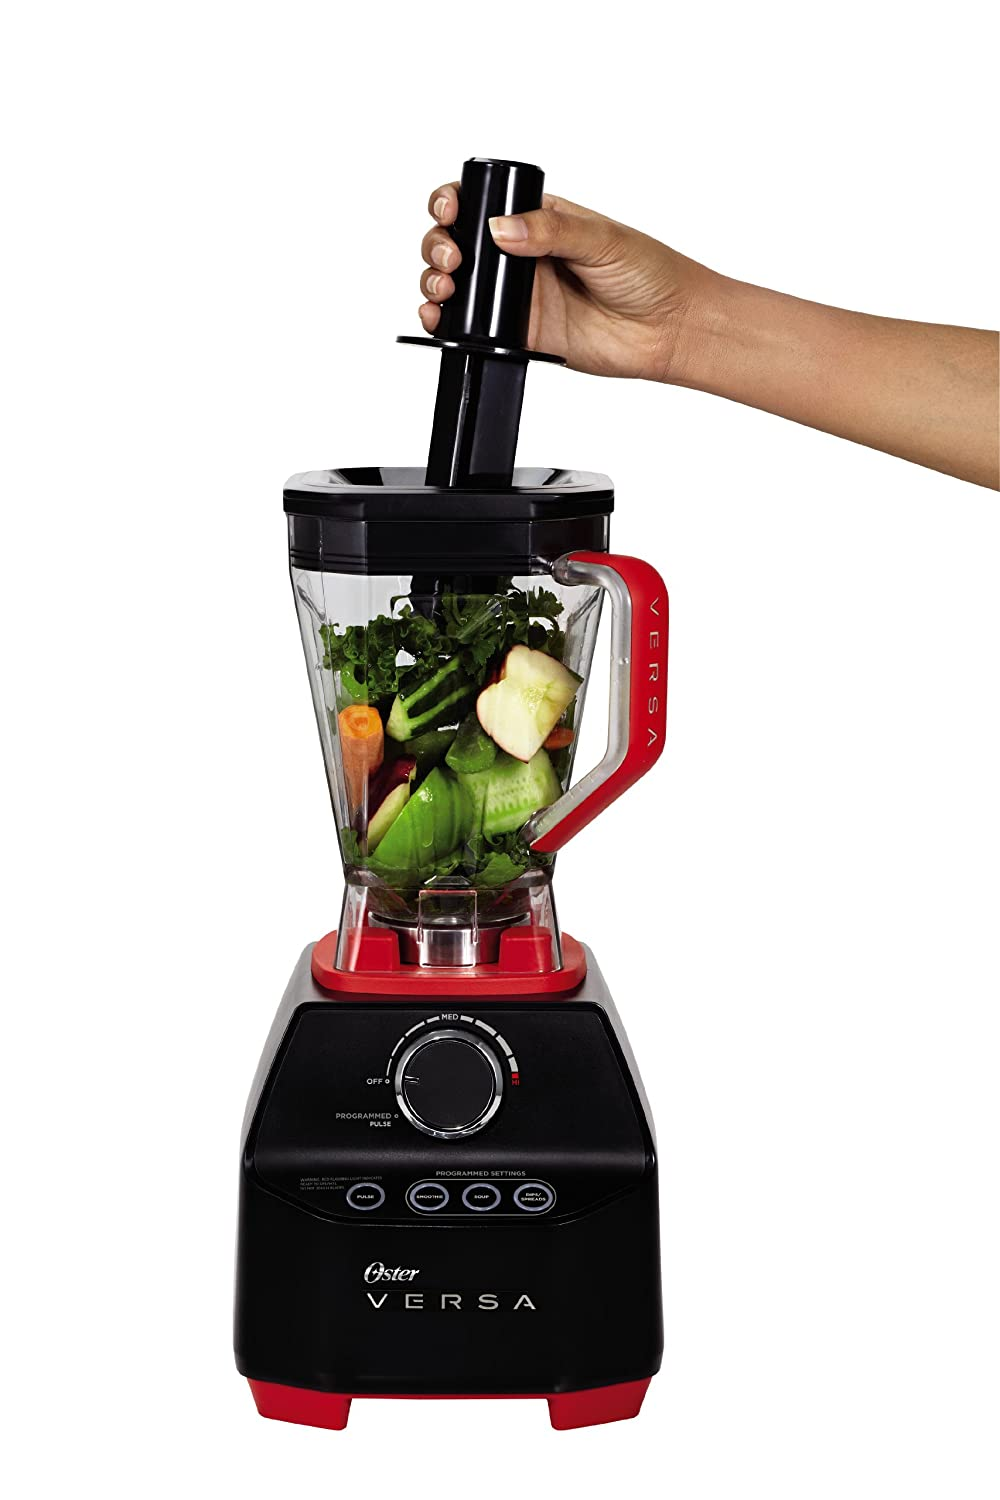 Oster Versa 1400 Professional Blender Review